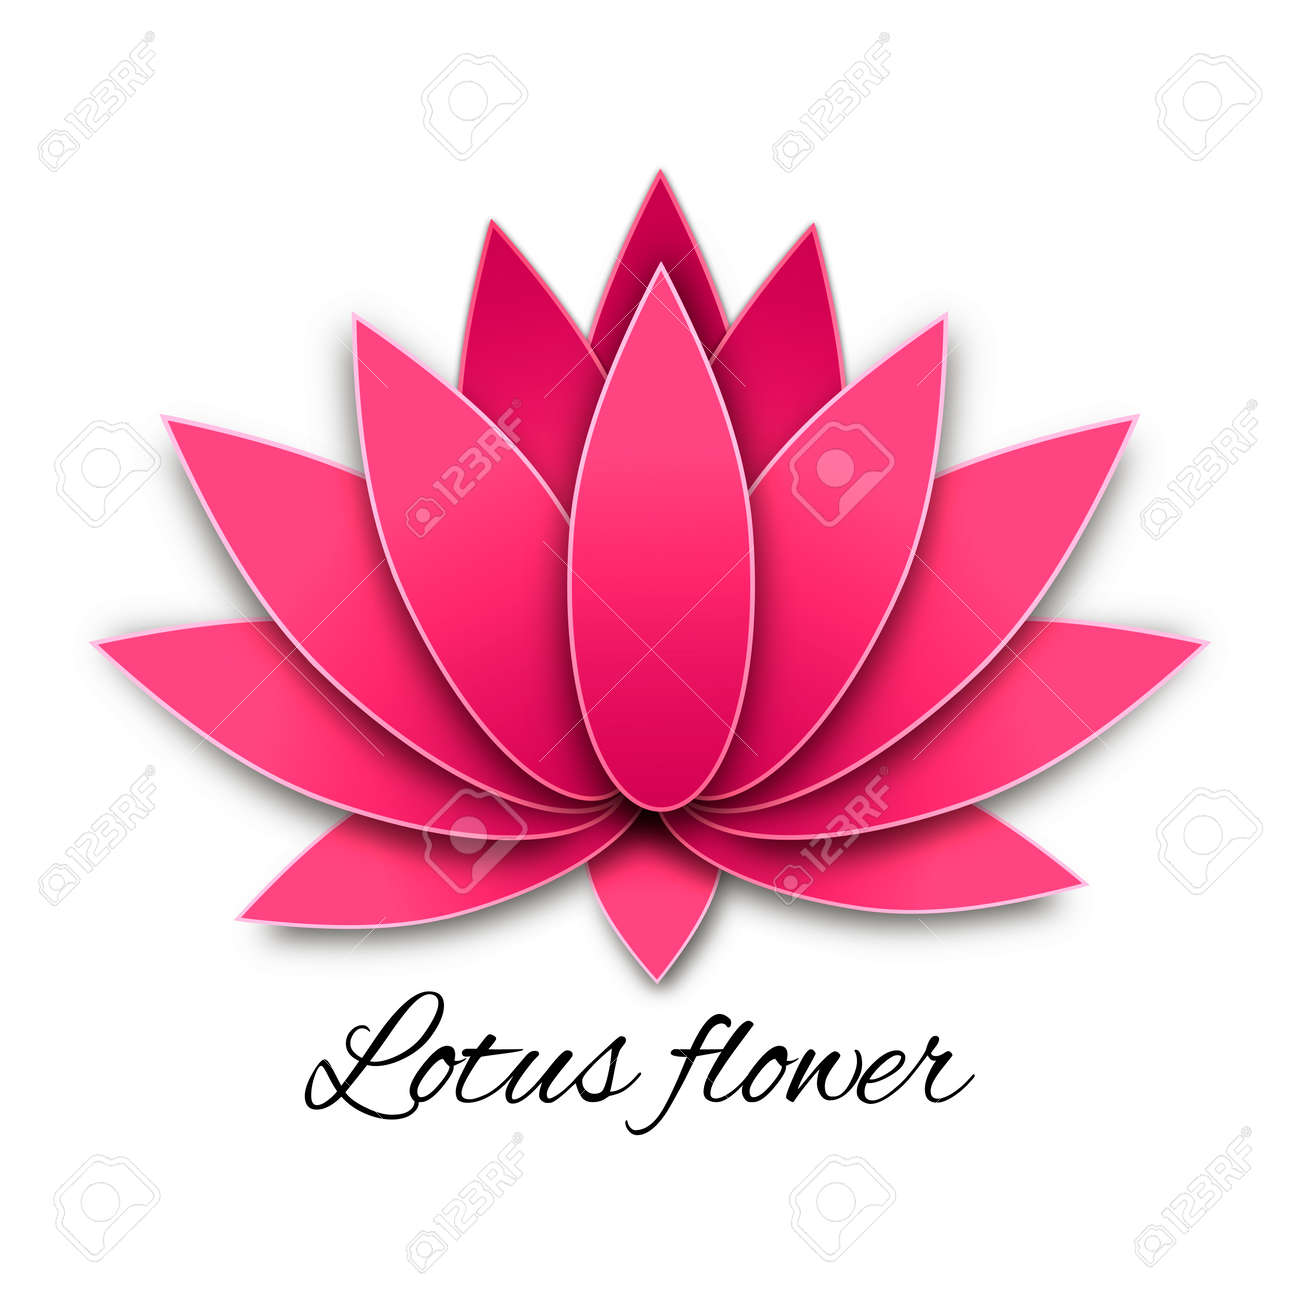 The Beautiful Lotus Flower On A White Background Royalty Free